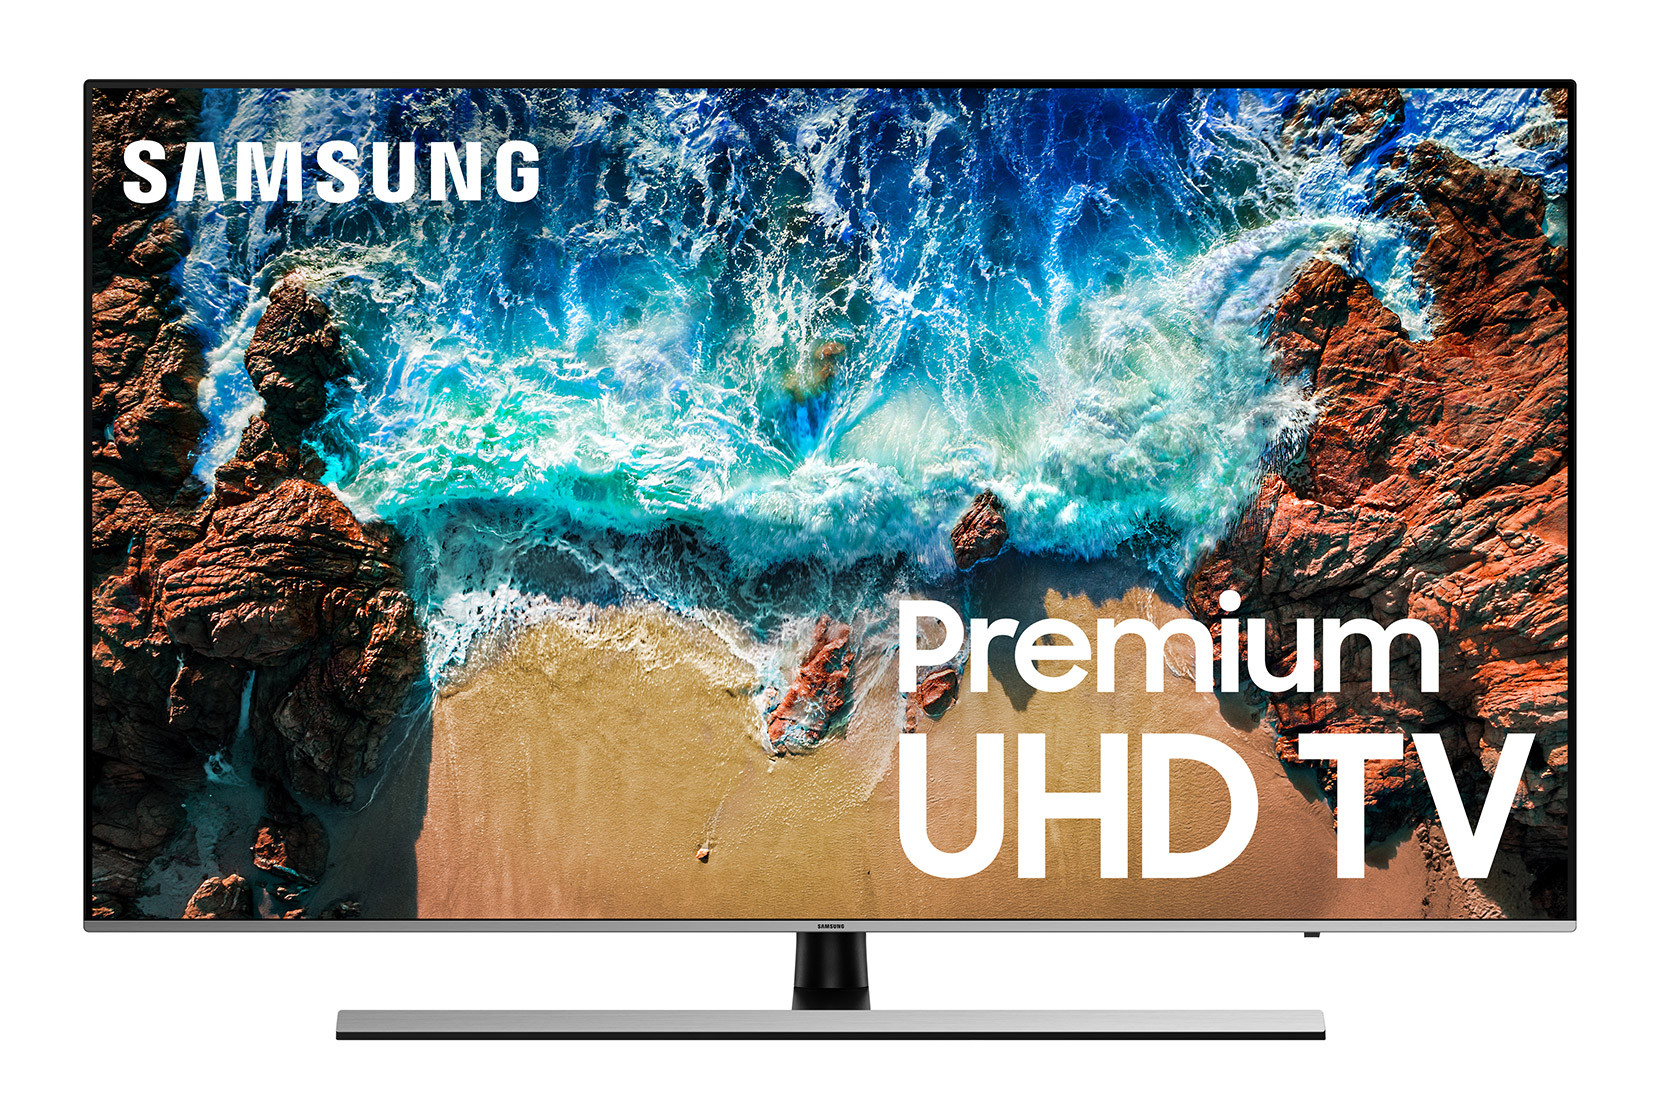 Best 60 Inch Tv 2020 Best LED TV 2019/2020   Top Recommended LED TVs from Samsung, Sony